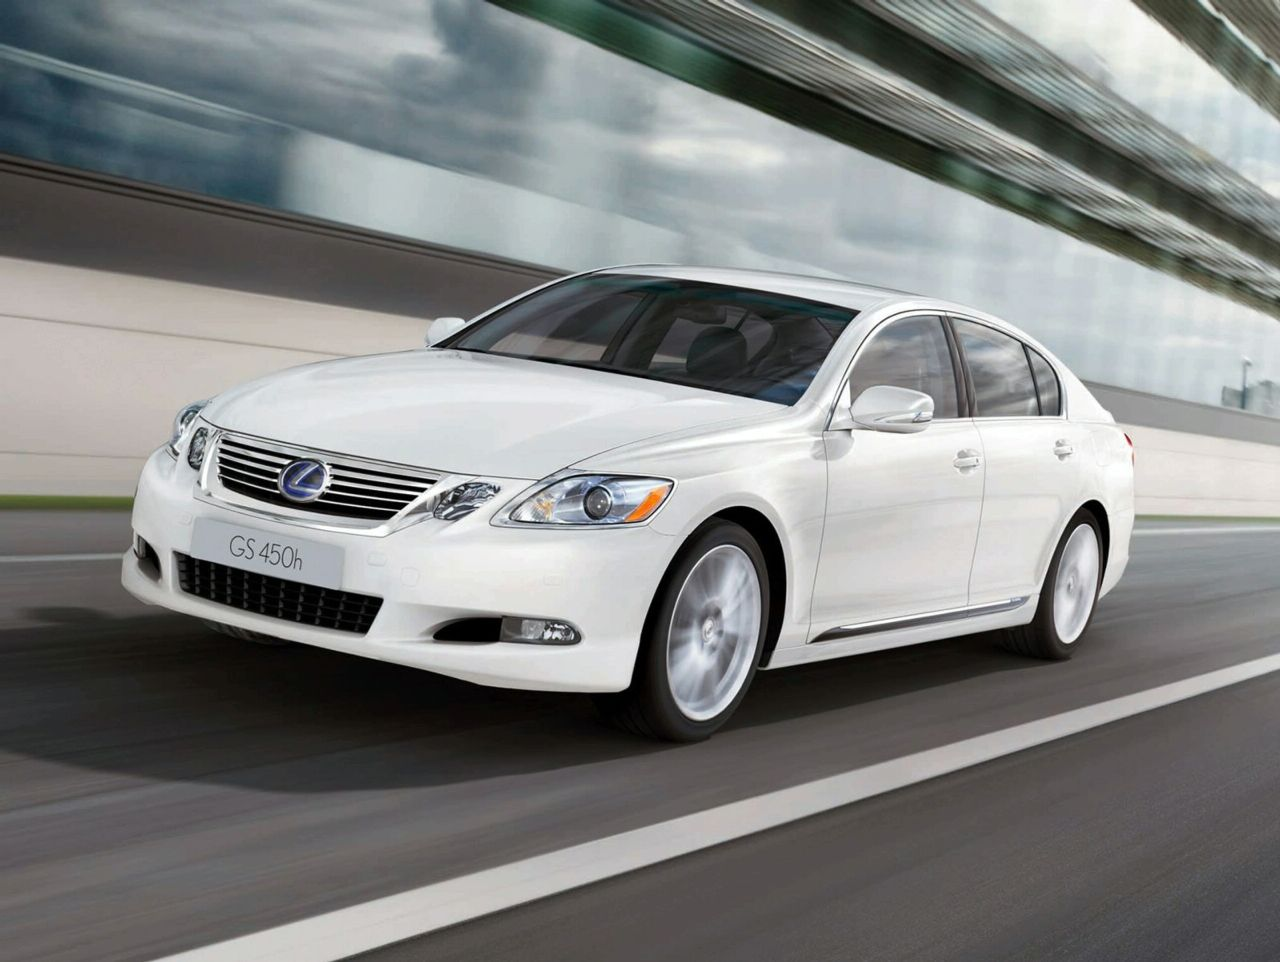 Lexus gs450 photo - 4